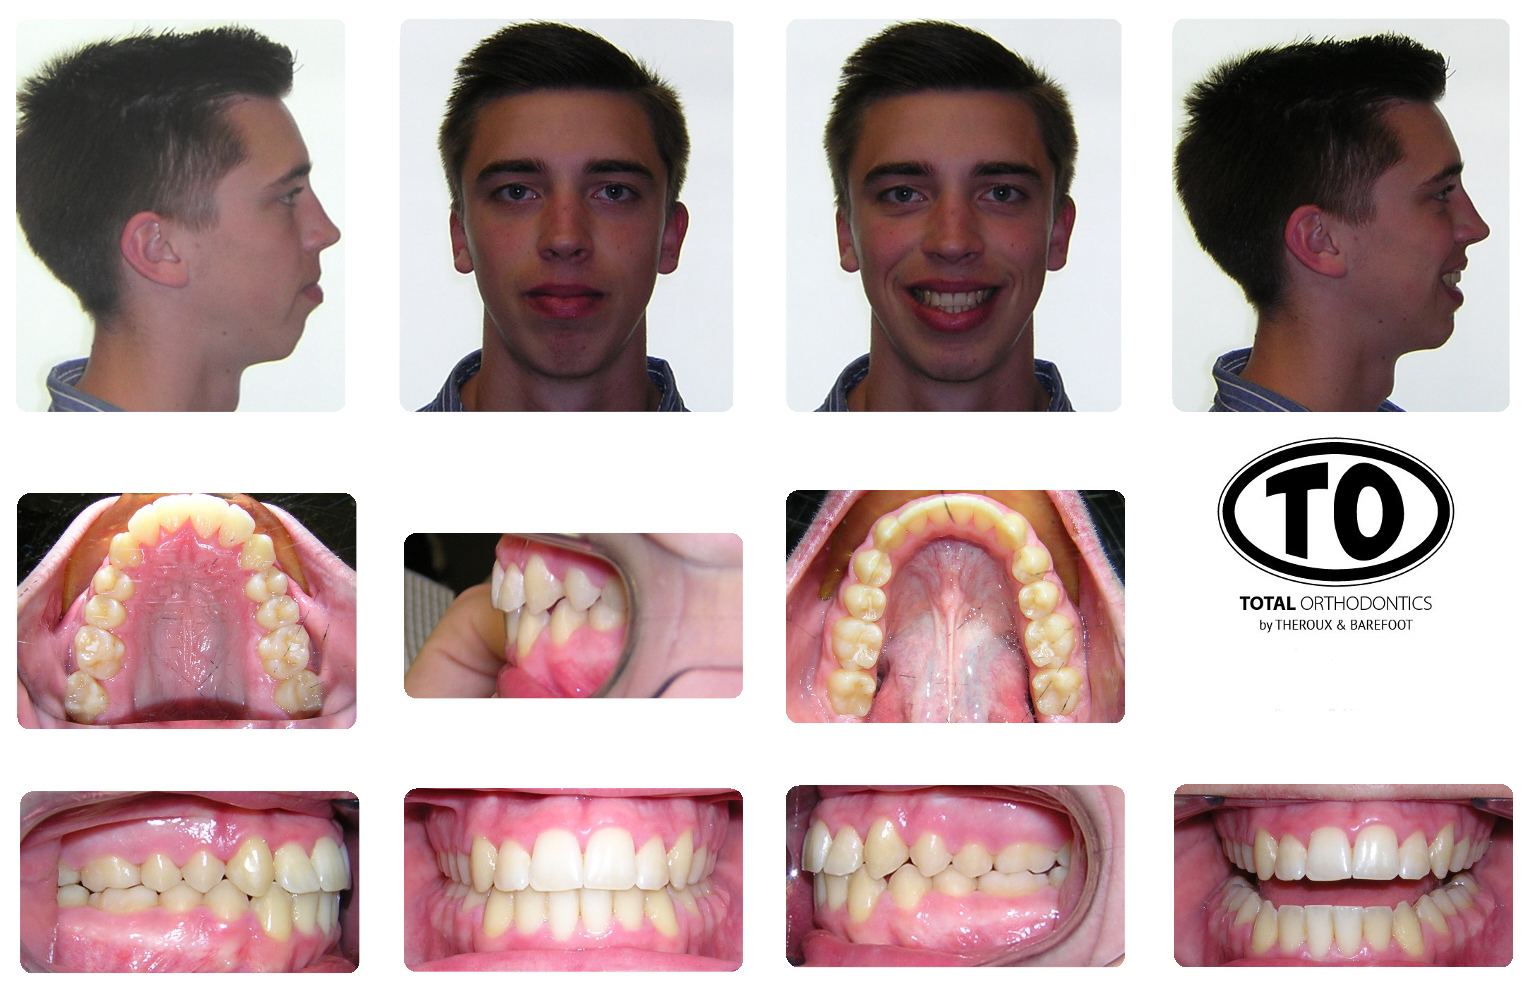 orthodontics for orthognathic surgery Braces in preparation for surgery the upper and lower teeth must be aligned within their respective jaws as to allow the teeth to fit together at the time of surgery in other words, the upper teeth are idealized in the upper jaw and the lower teeth are idealized in the lower jaw.